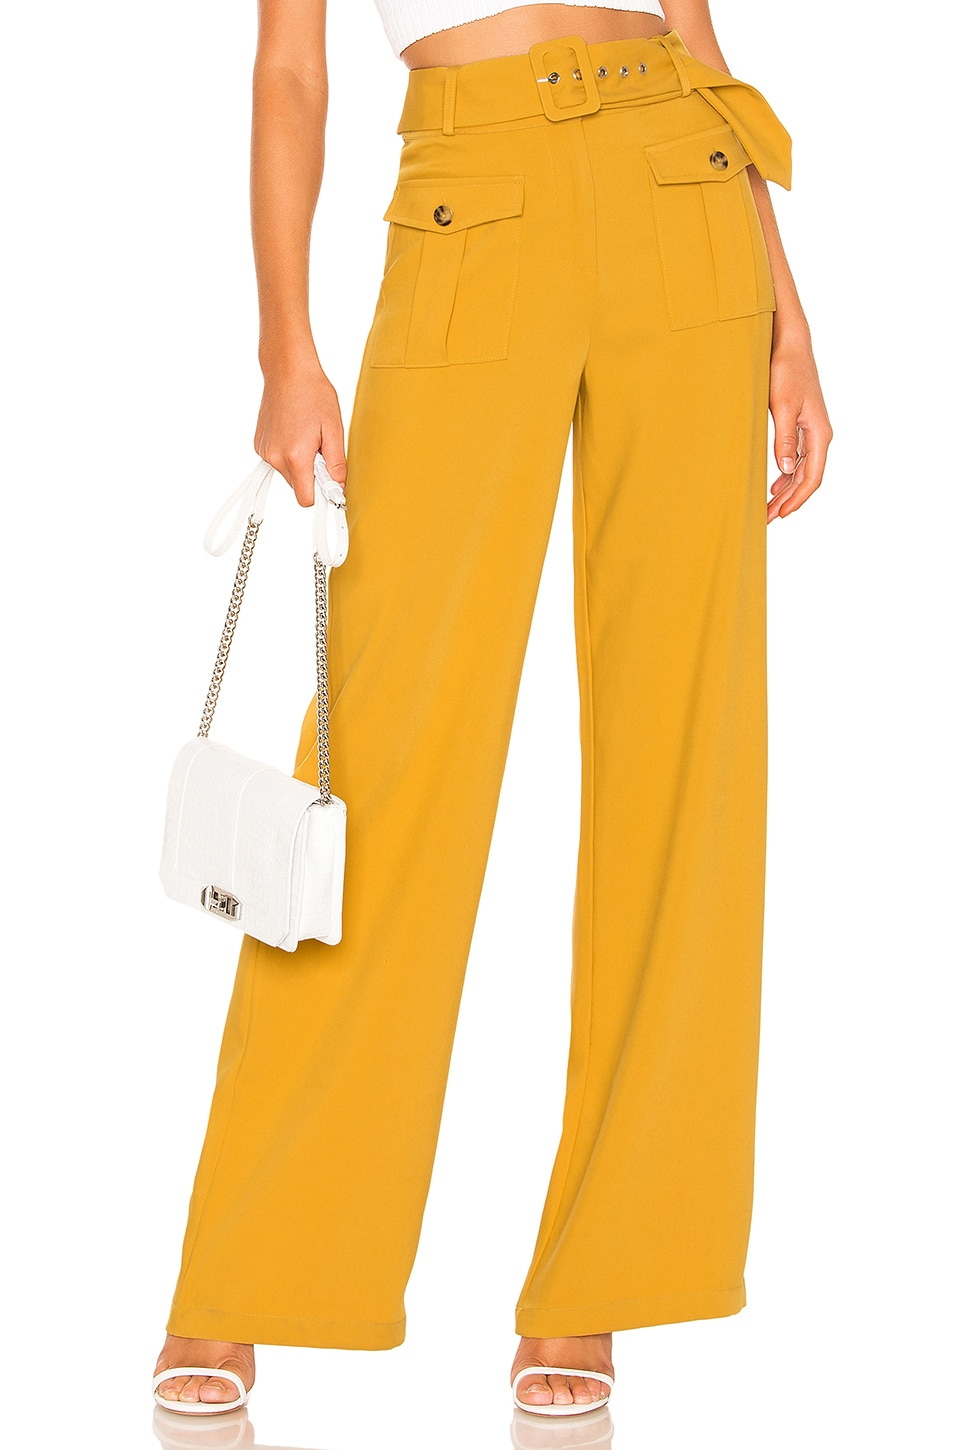 Tularosa Cinnamon Pants in Mustard